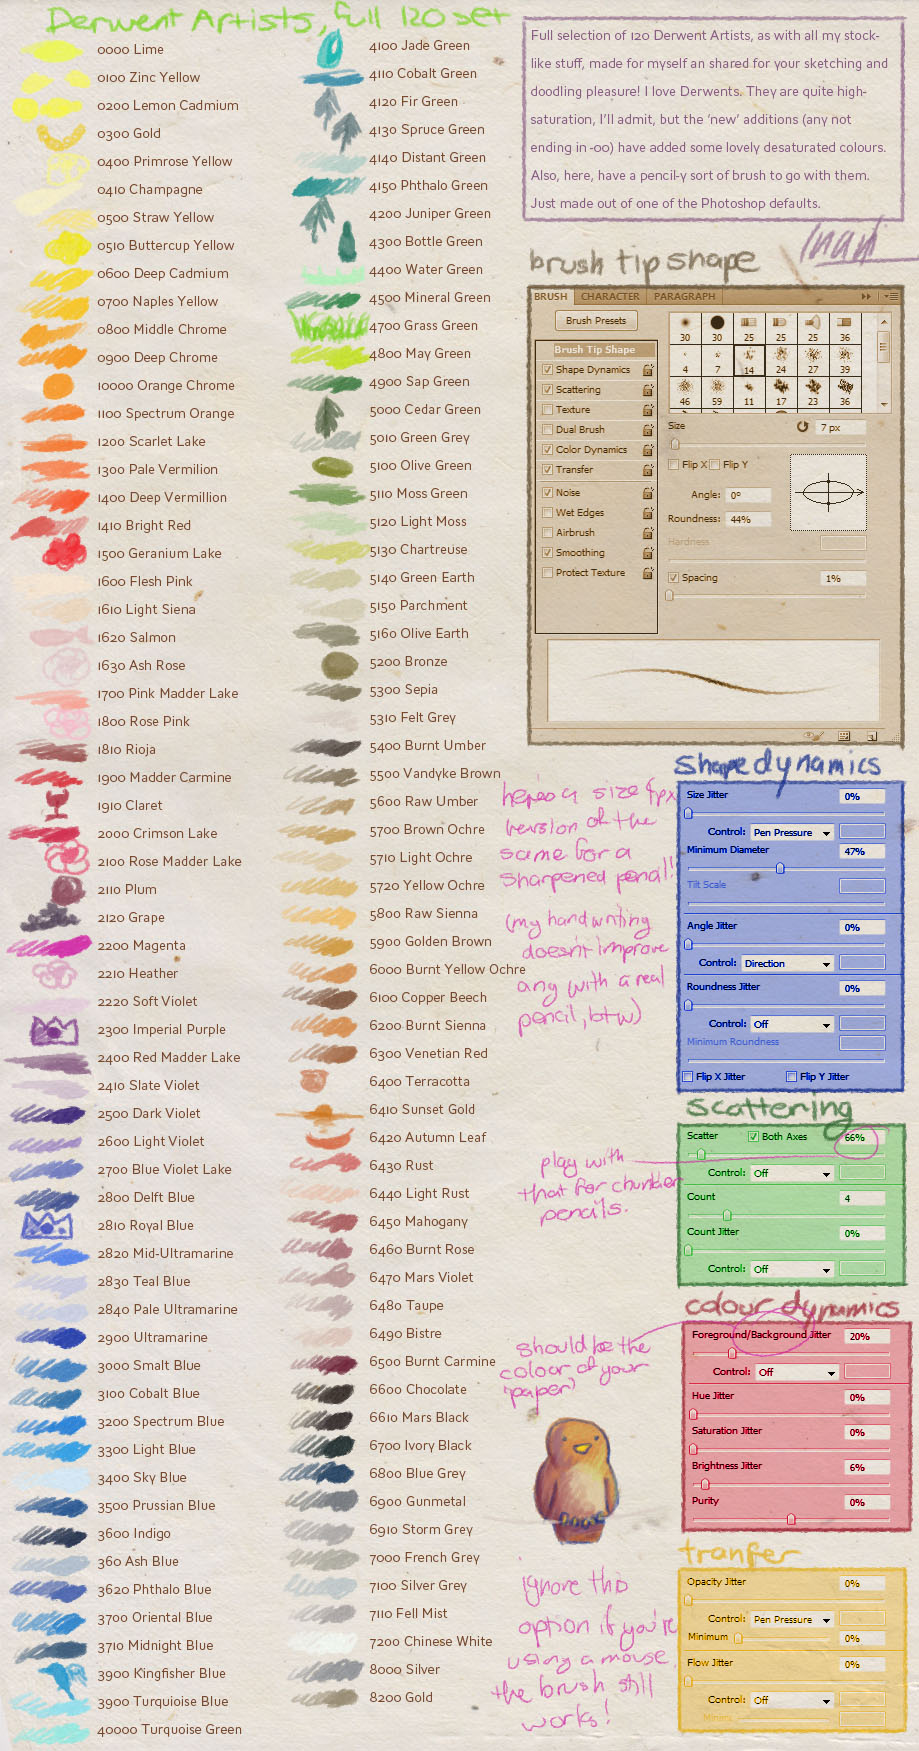 Derwent Artists Photoshop Swatches by annarti